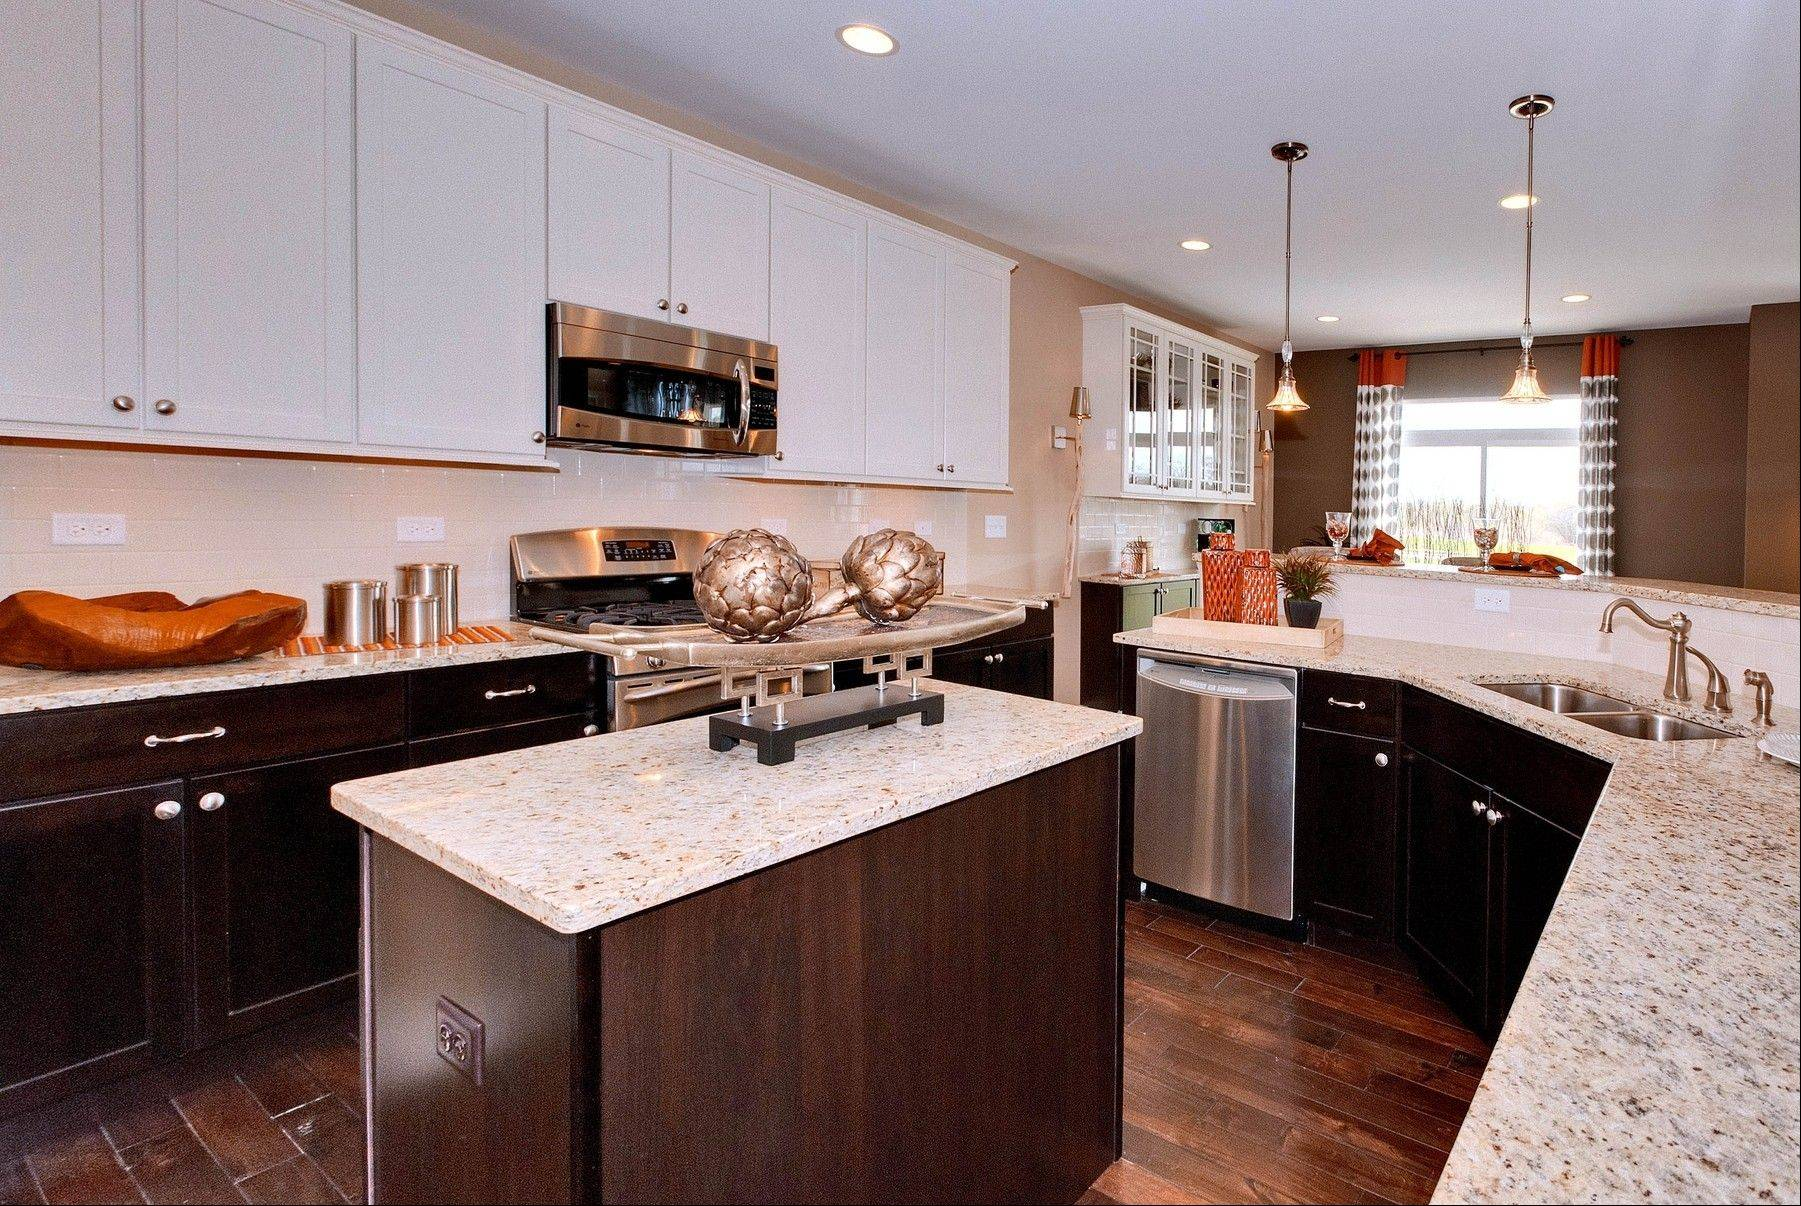 Modern kitchens have always been popular with buyers. Center islands are desired for their extra counter space.